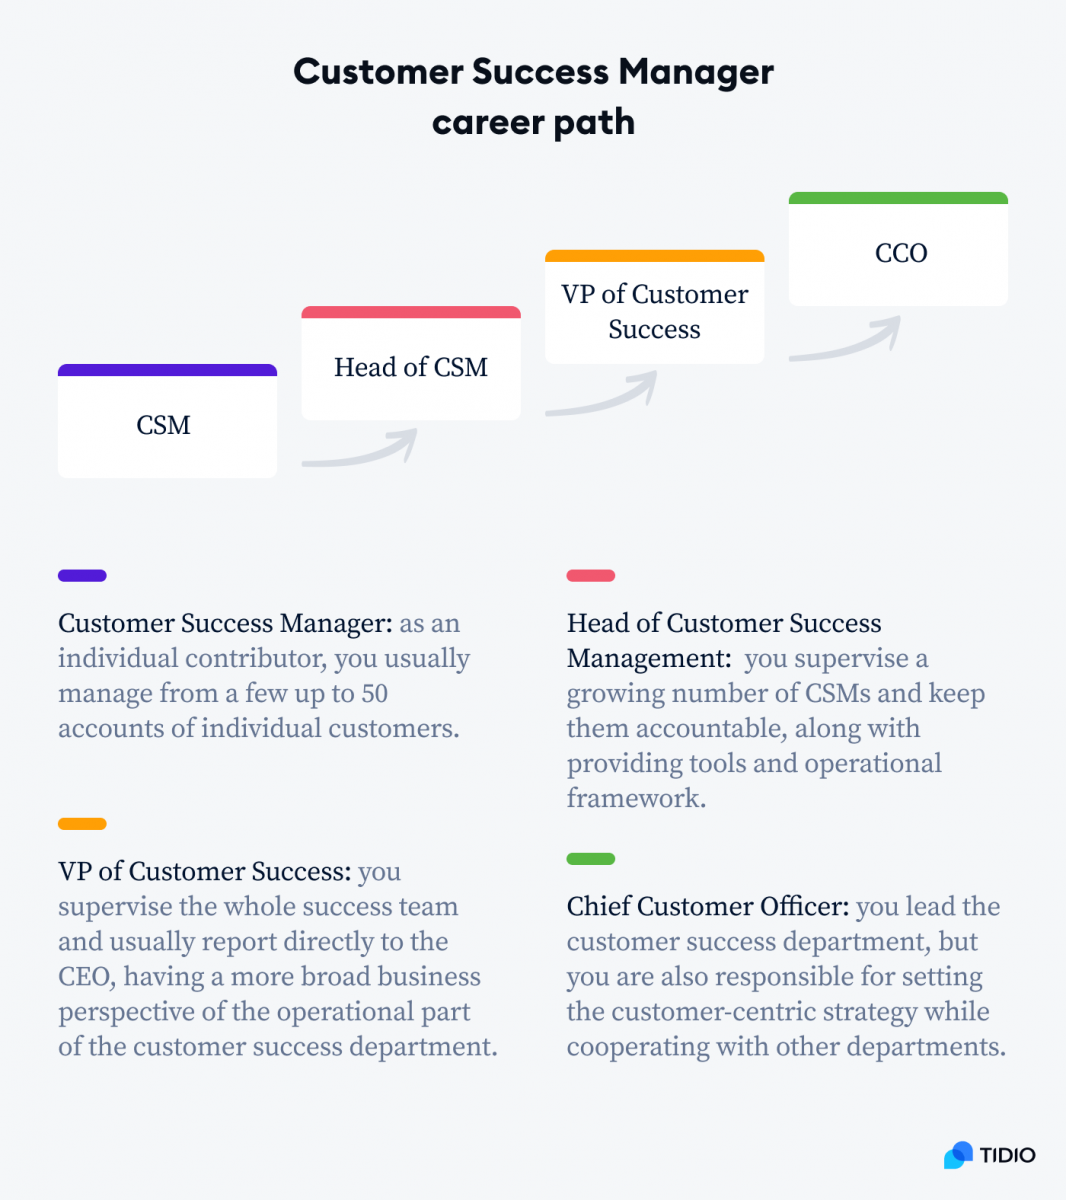 Customer Success Manager career path infographic